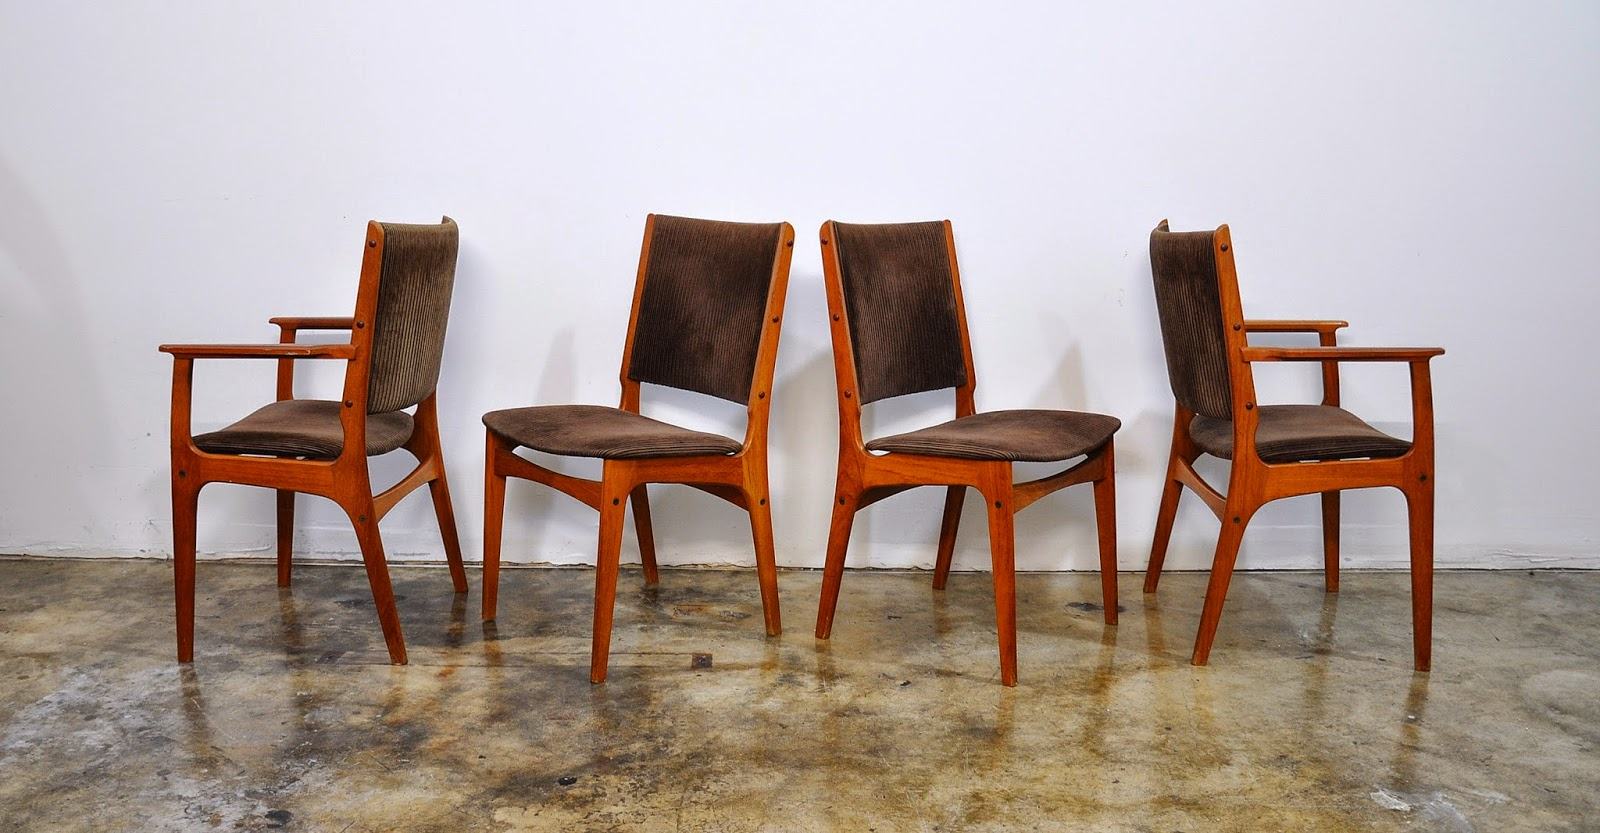 Amazoncom set of 4 dining chairs Home amp Kitchen